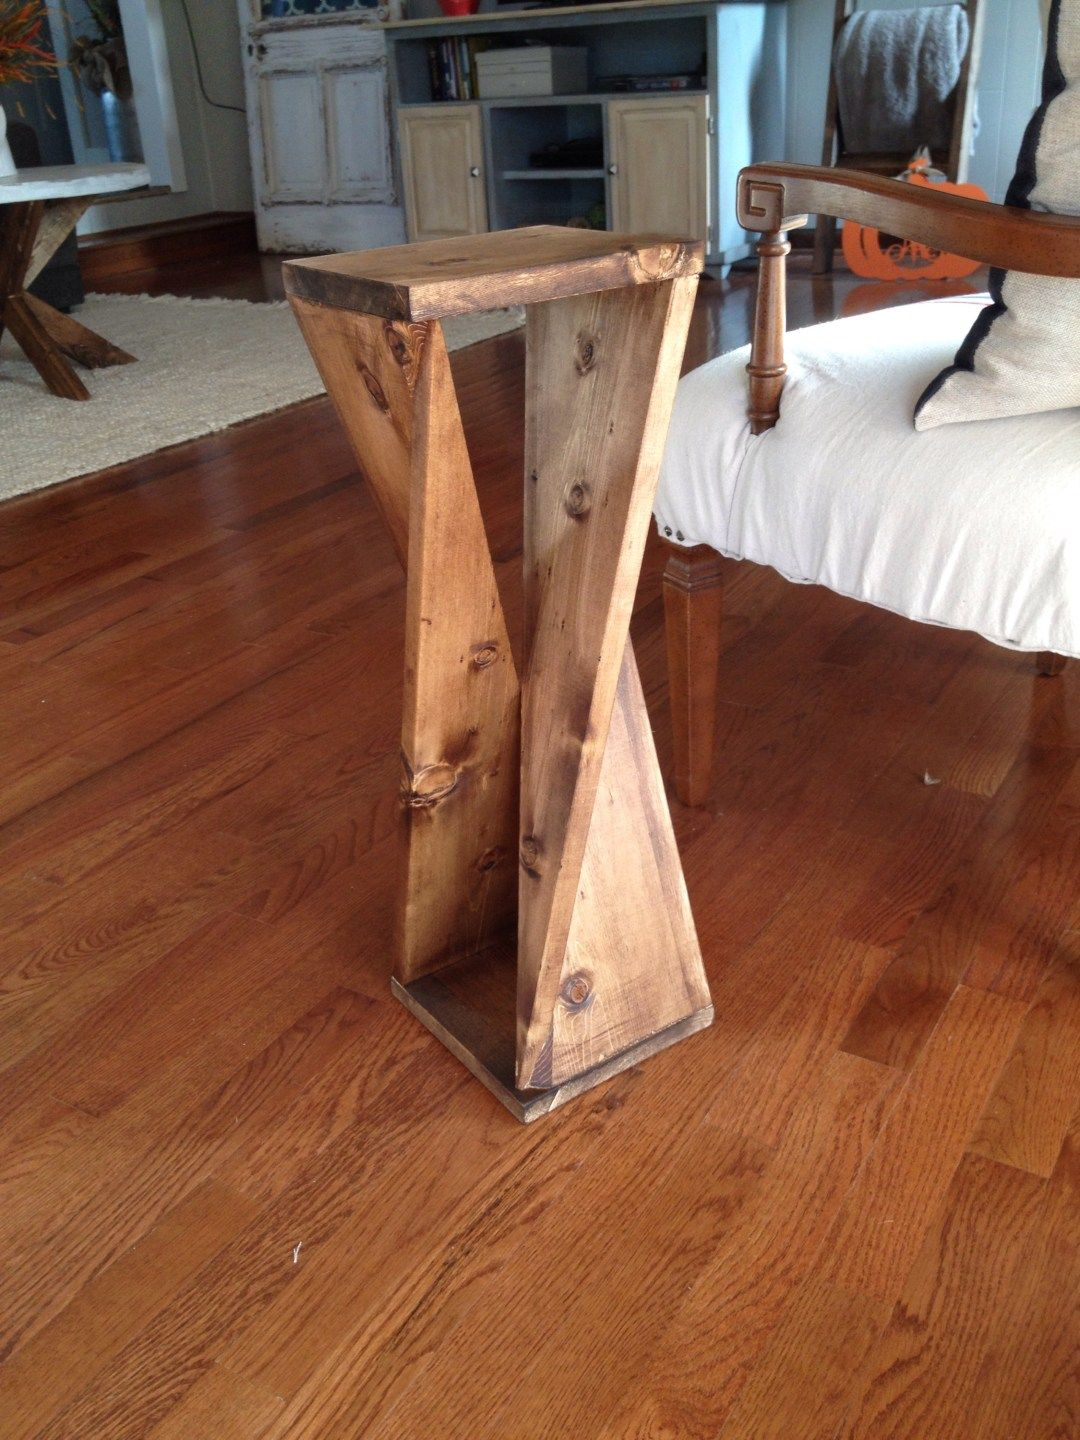 Twisty Table by Diaries Easy woodworking